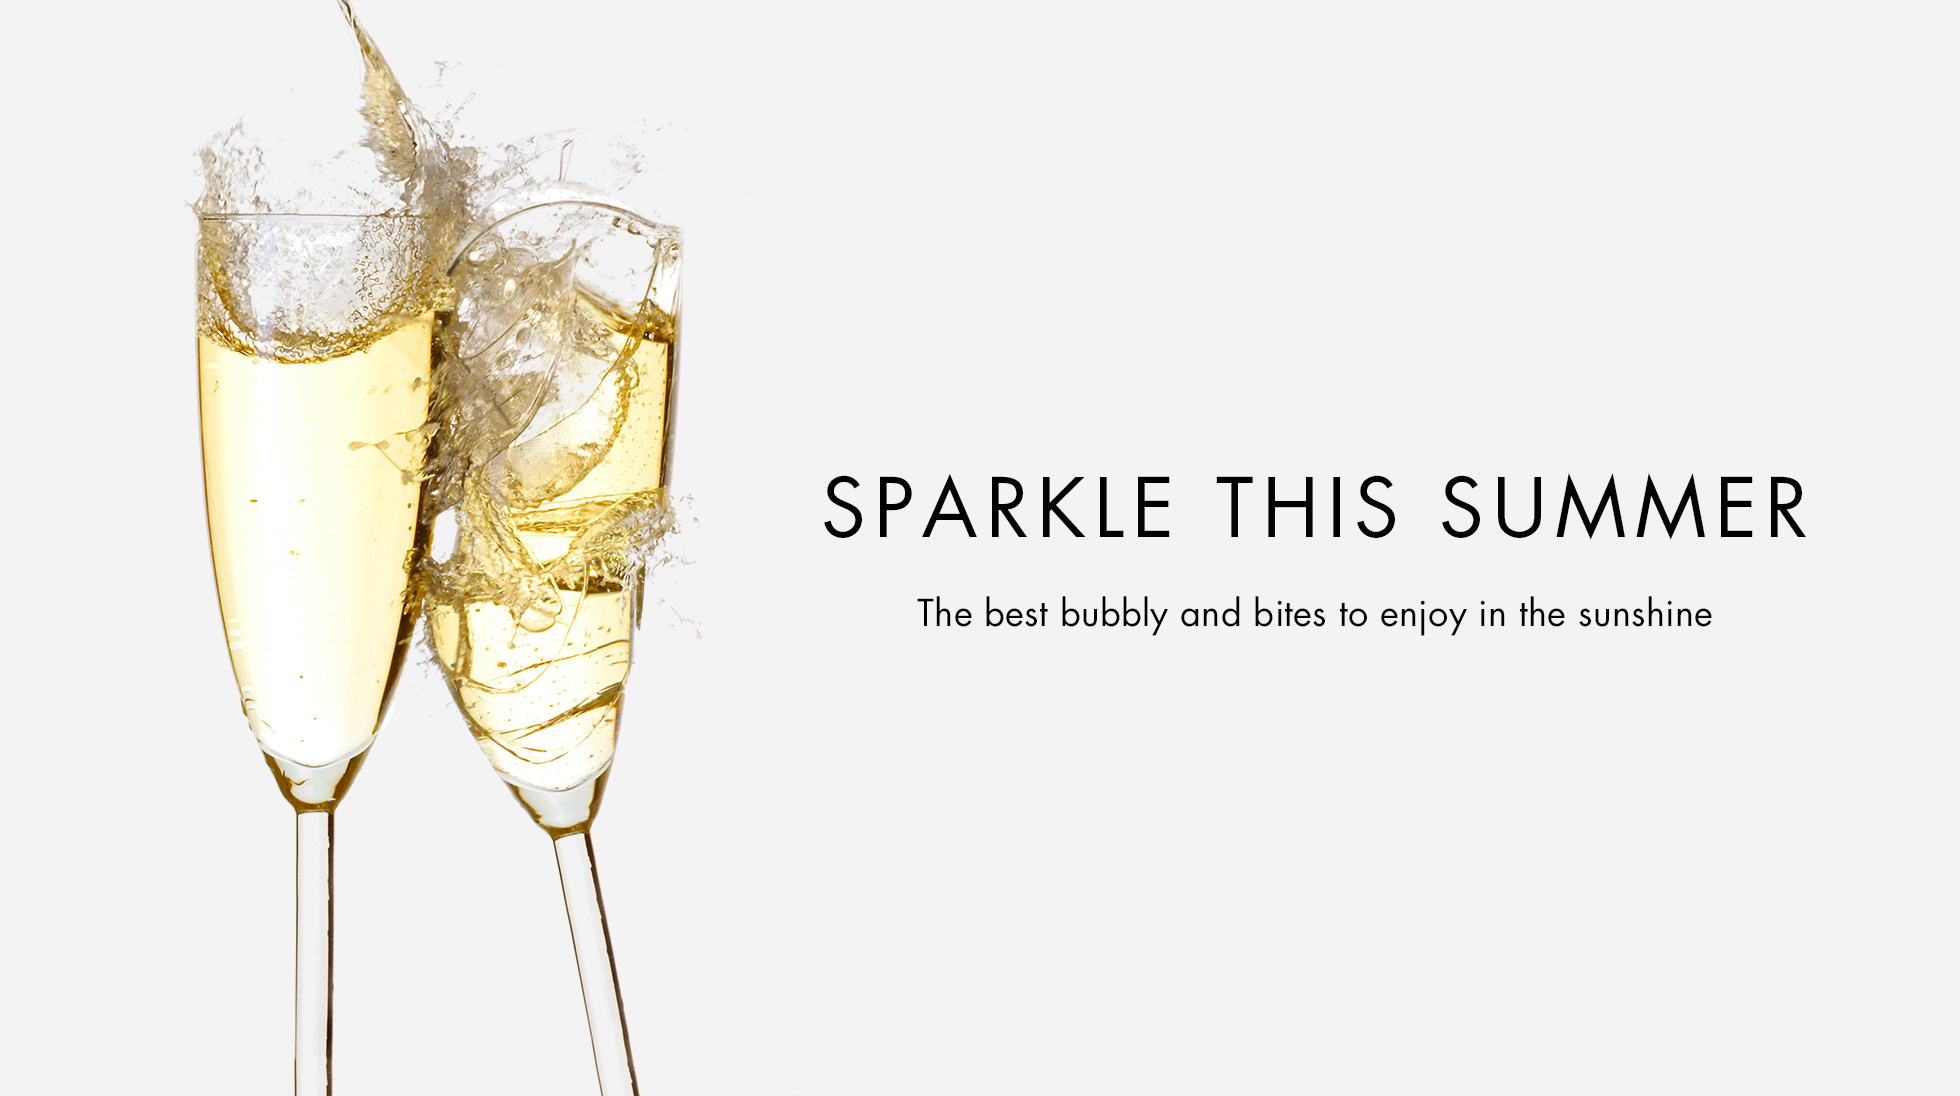 SPARKLE THIS SUMMER